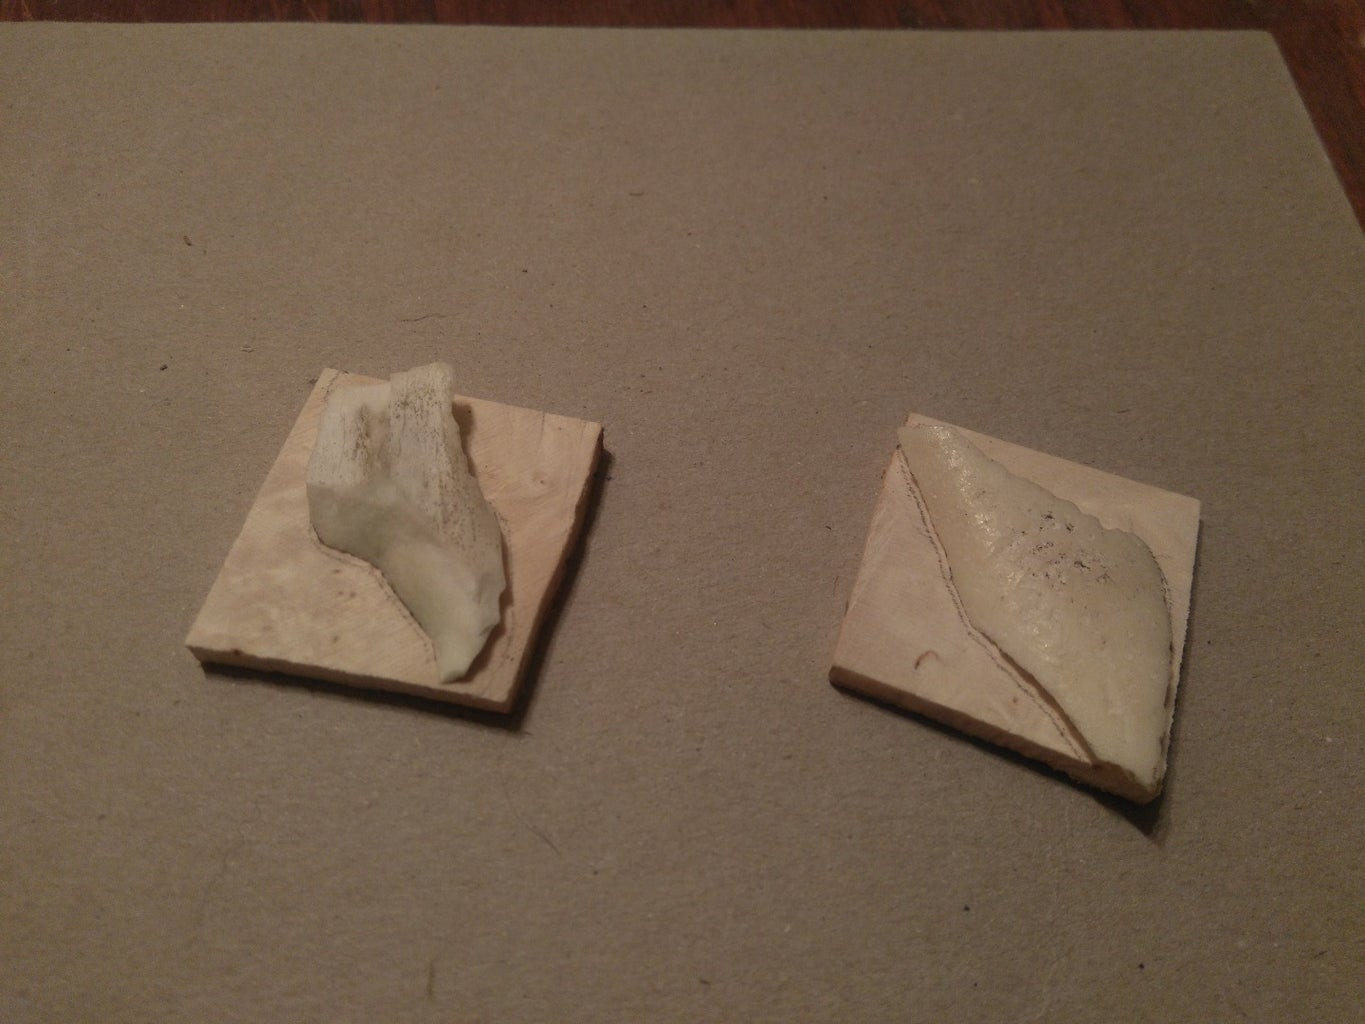 Making the Pieces, and Glueing Them Together